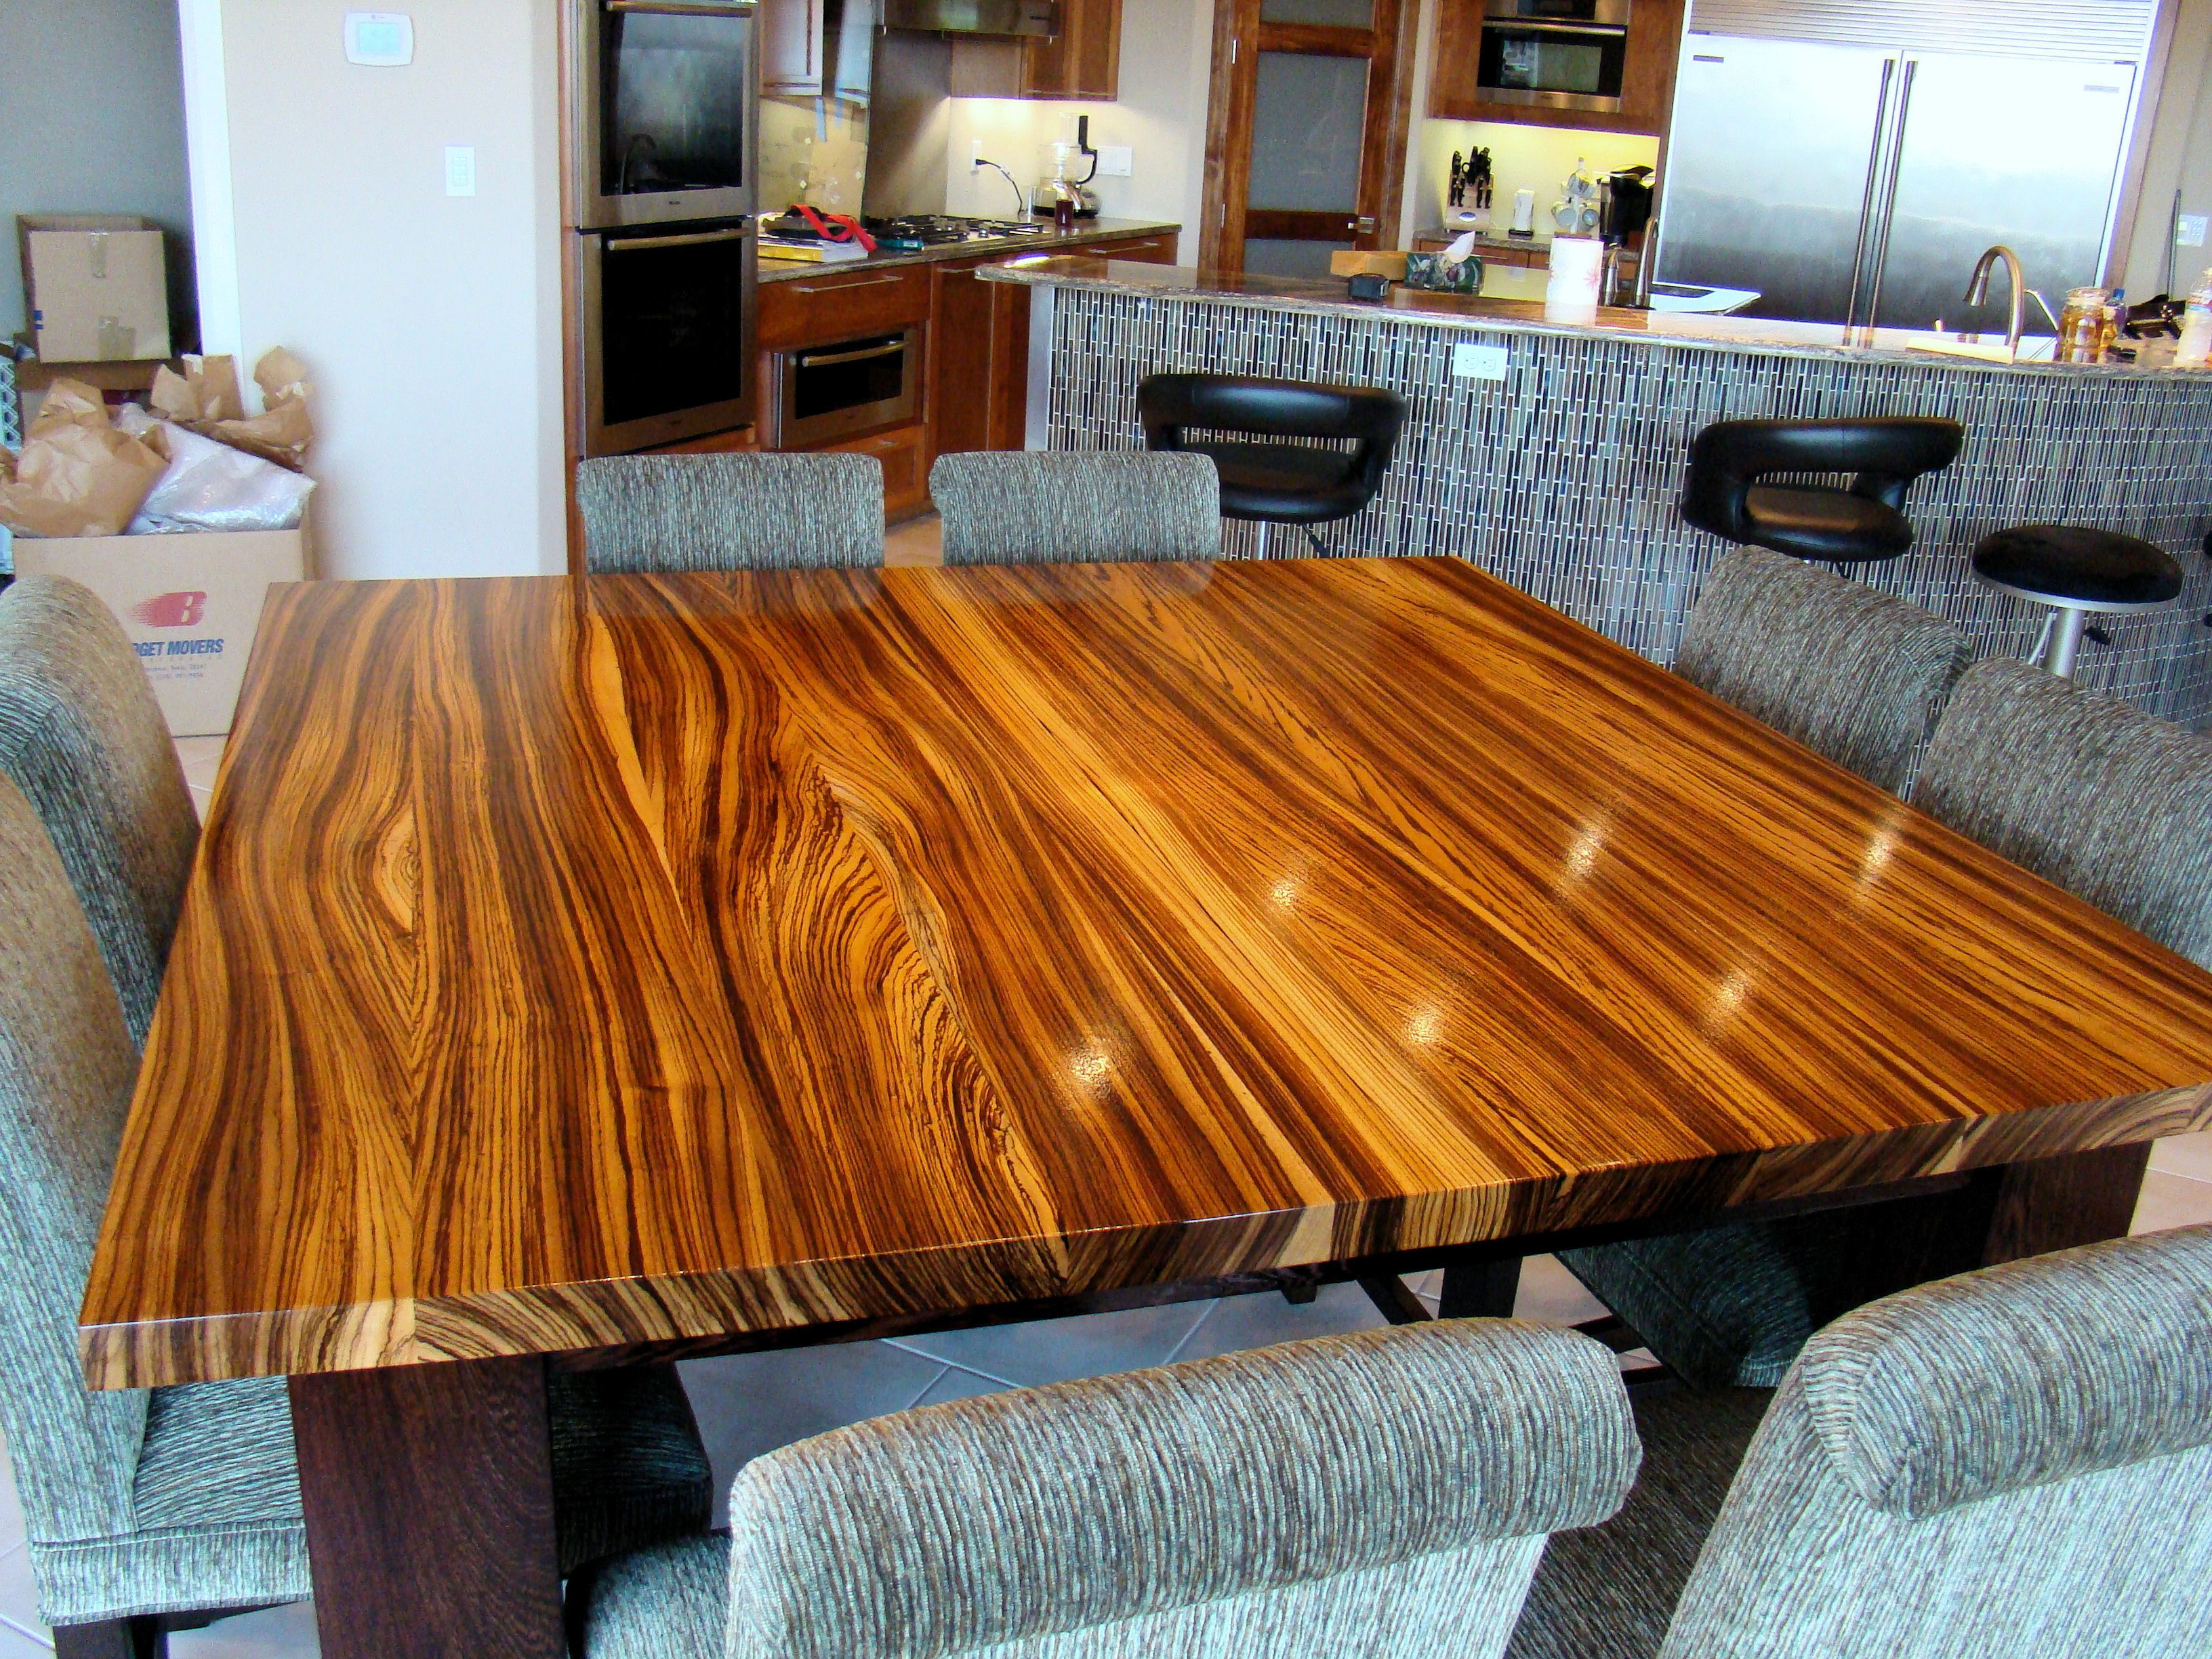 Devos custom woodworking traditional style tables